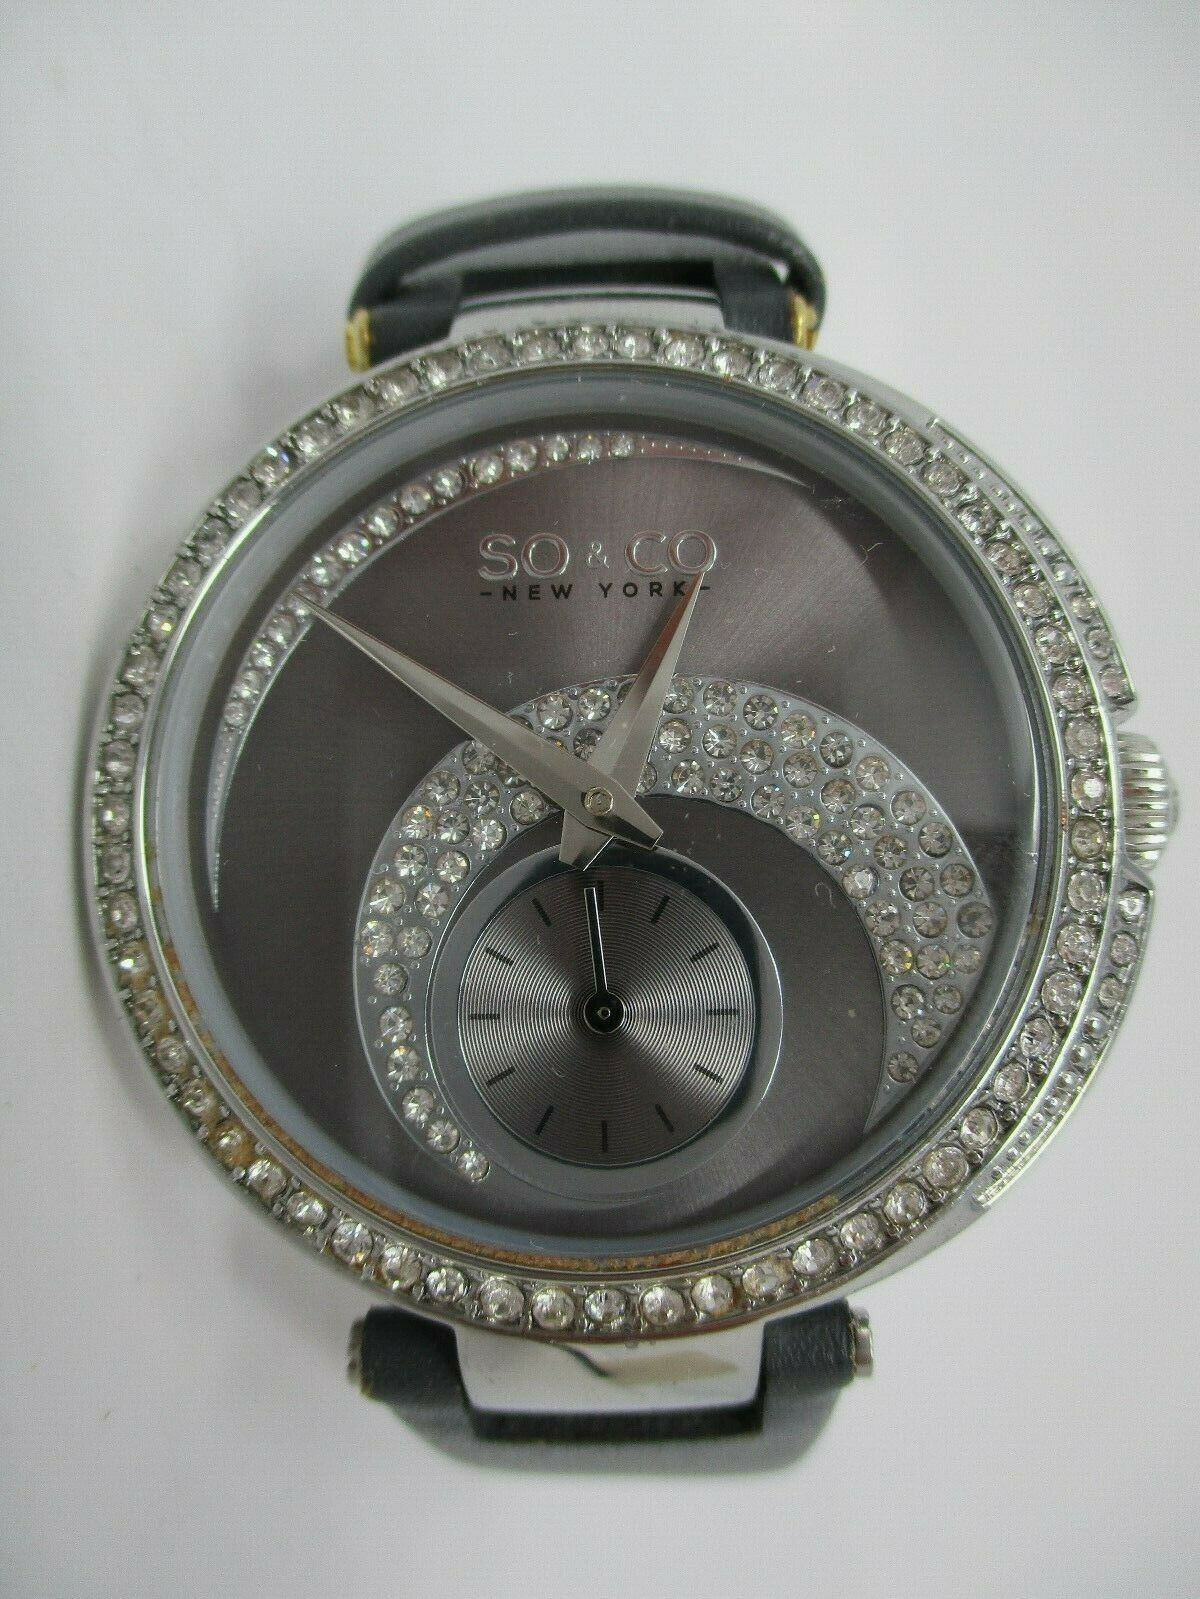 So & Co Womens Watch Grey Leather Band With Crystal Accents